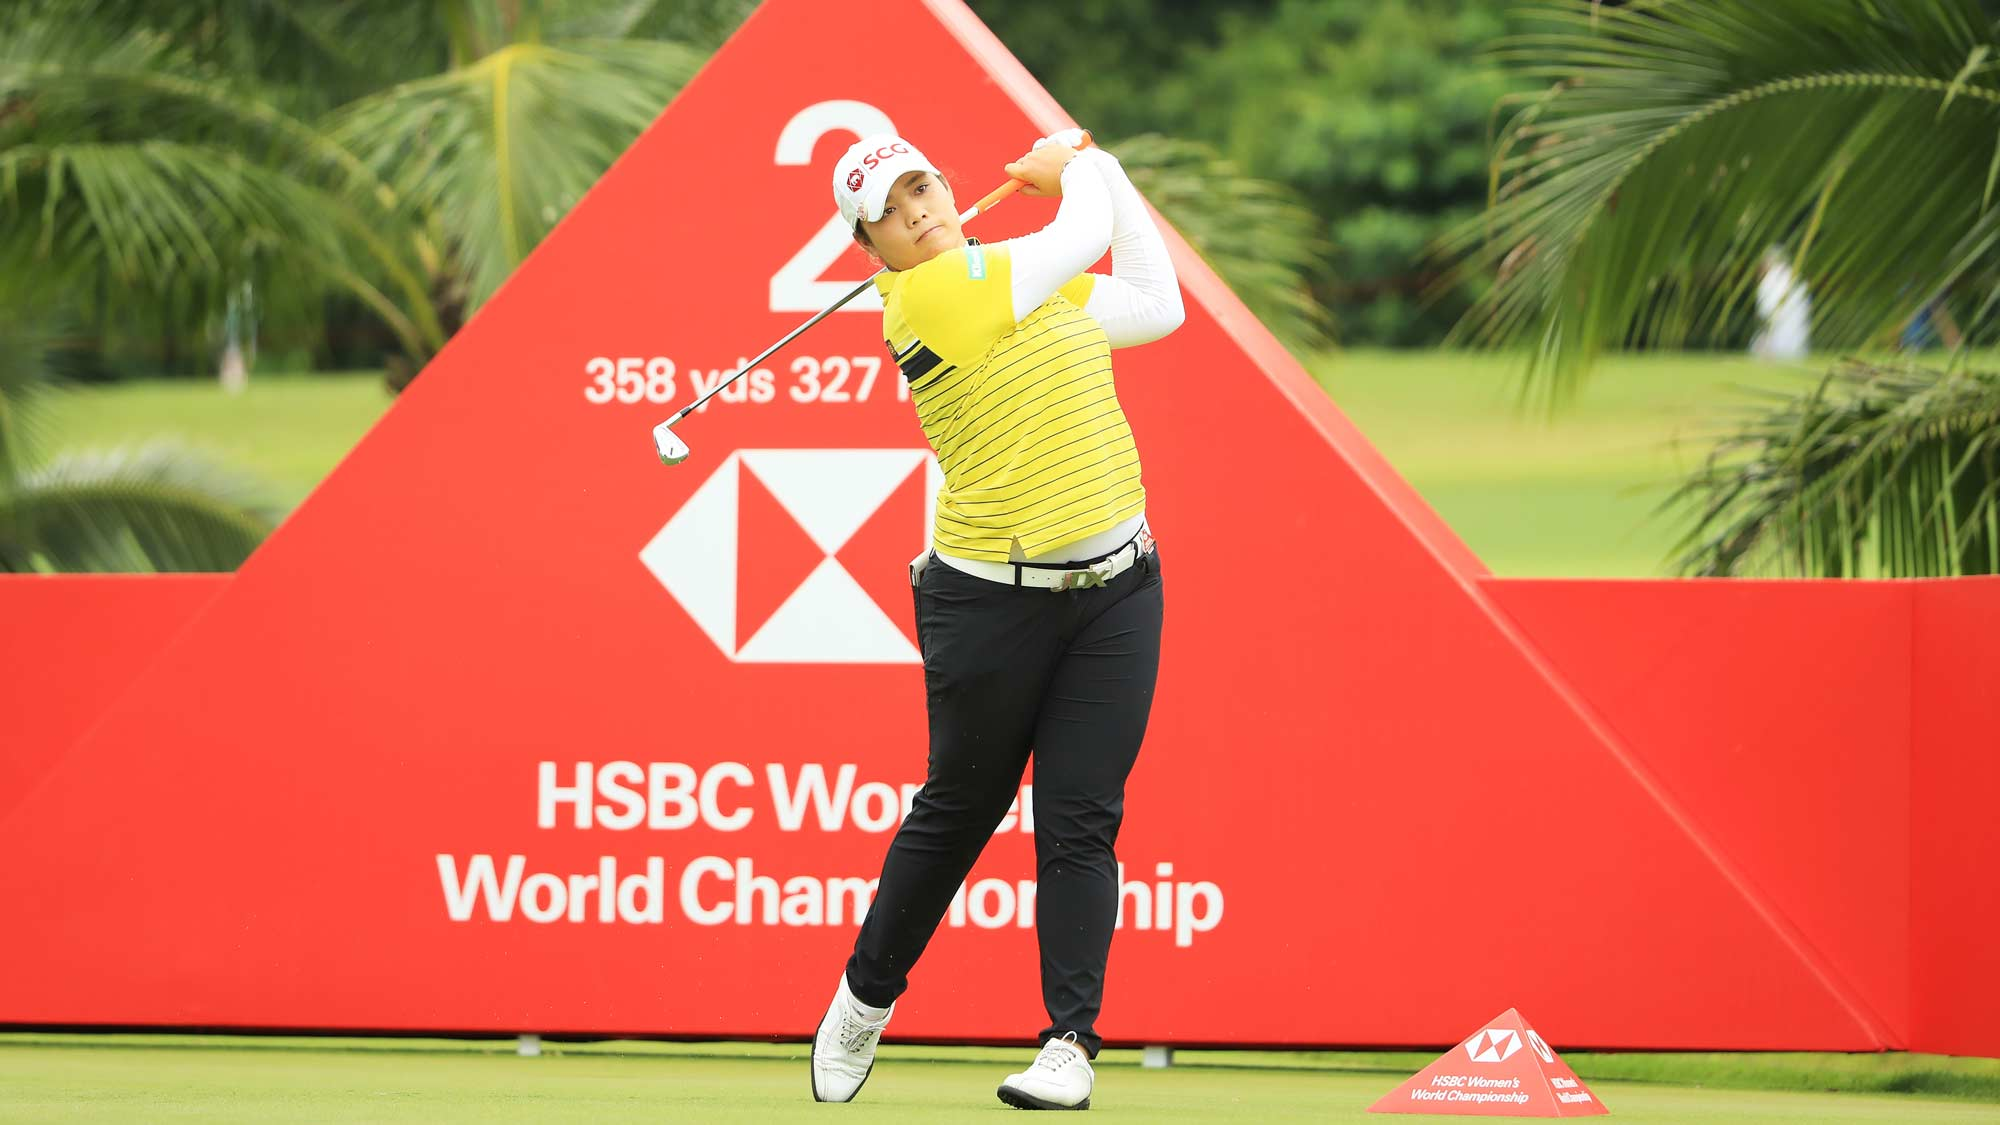 Ariya Jutanugarn of Thailand plays her shot from the second tee during the first round of the HSBC Women's World Championship at Sentosa Golf Club on February 28, 2019 in Singapore.